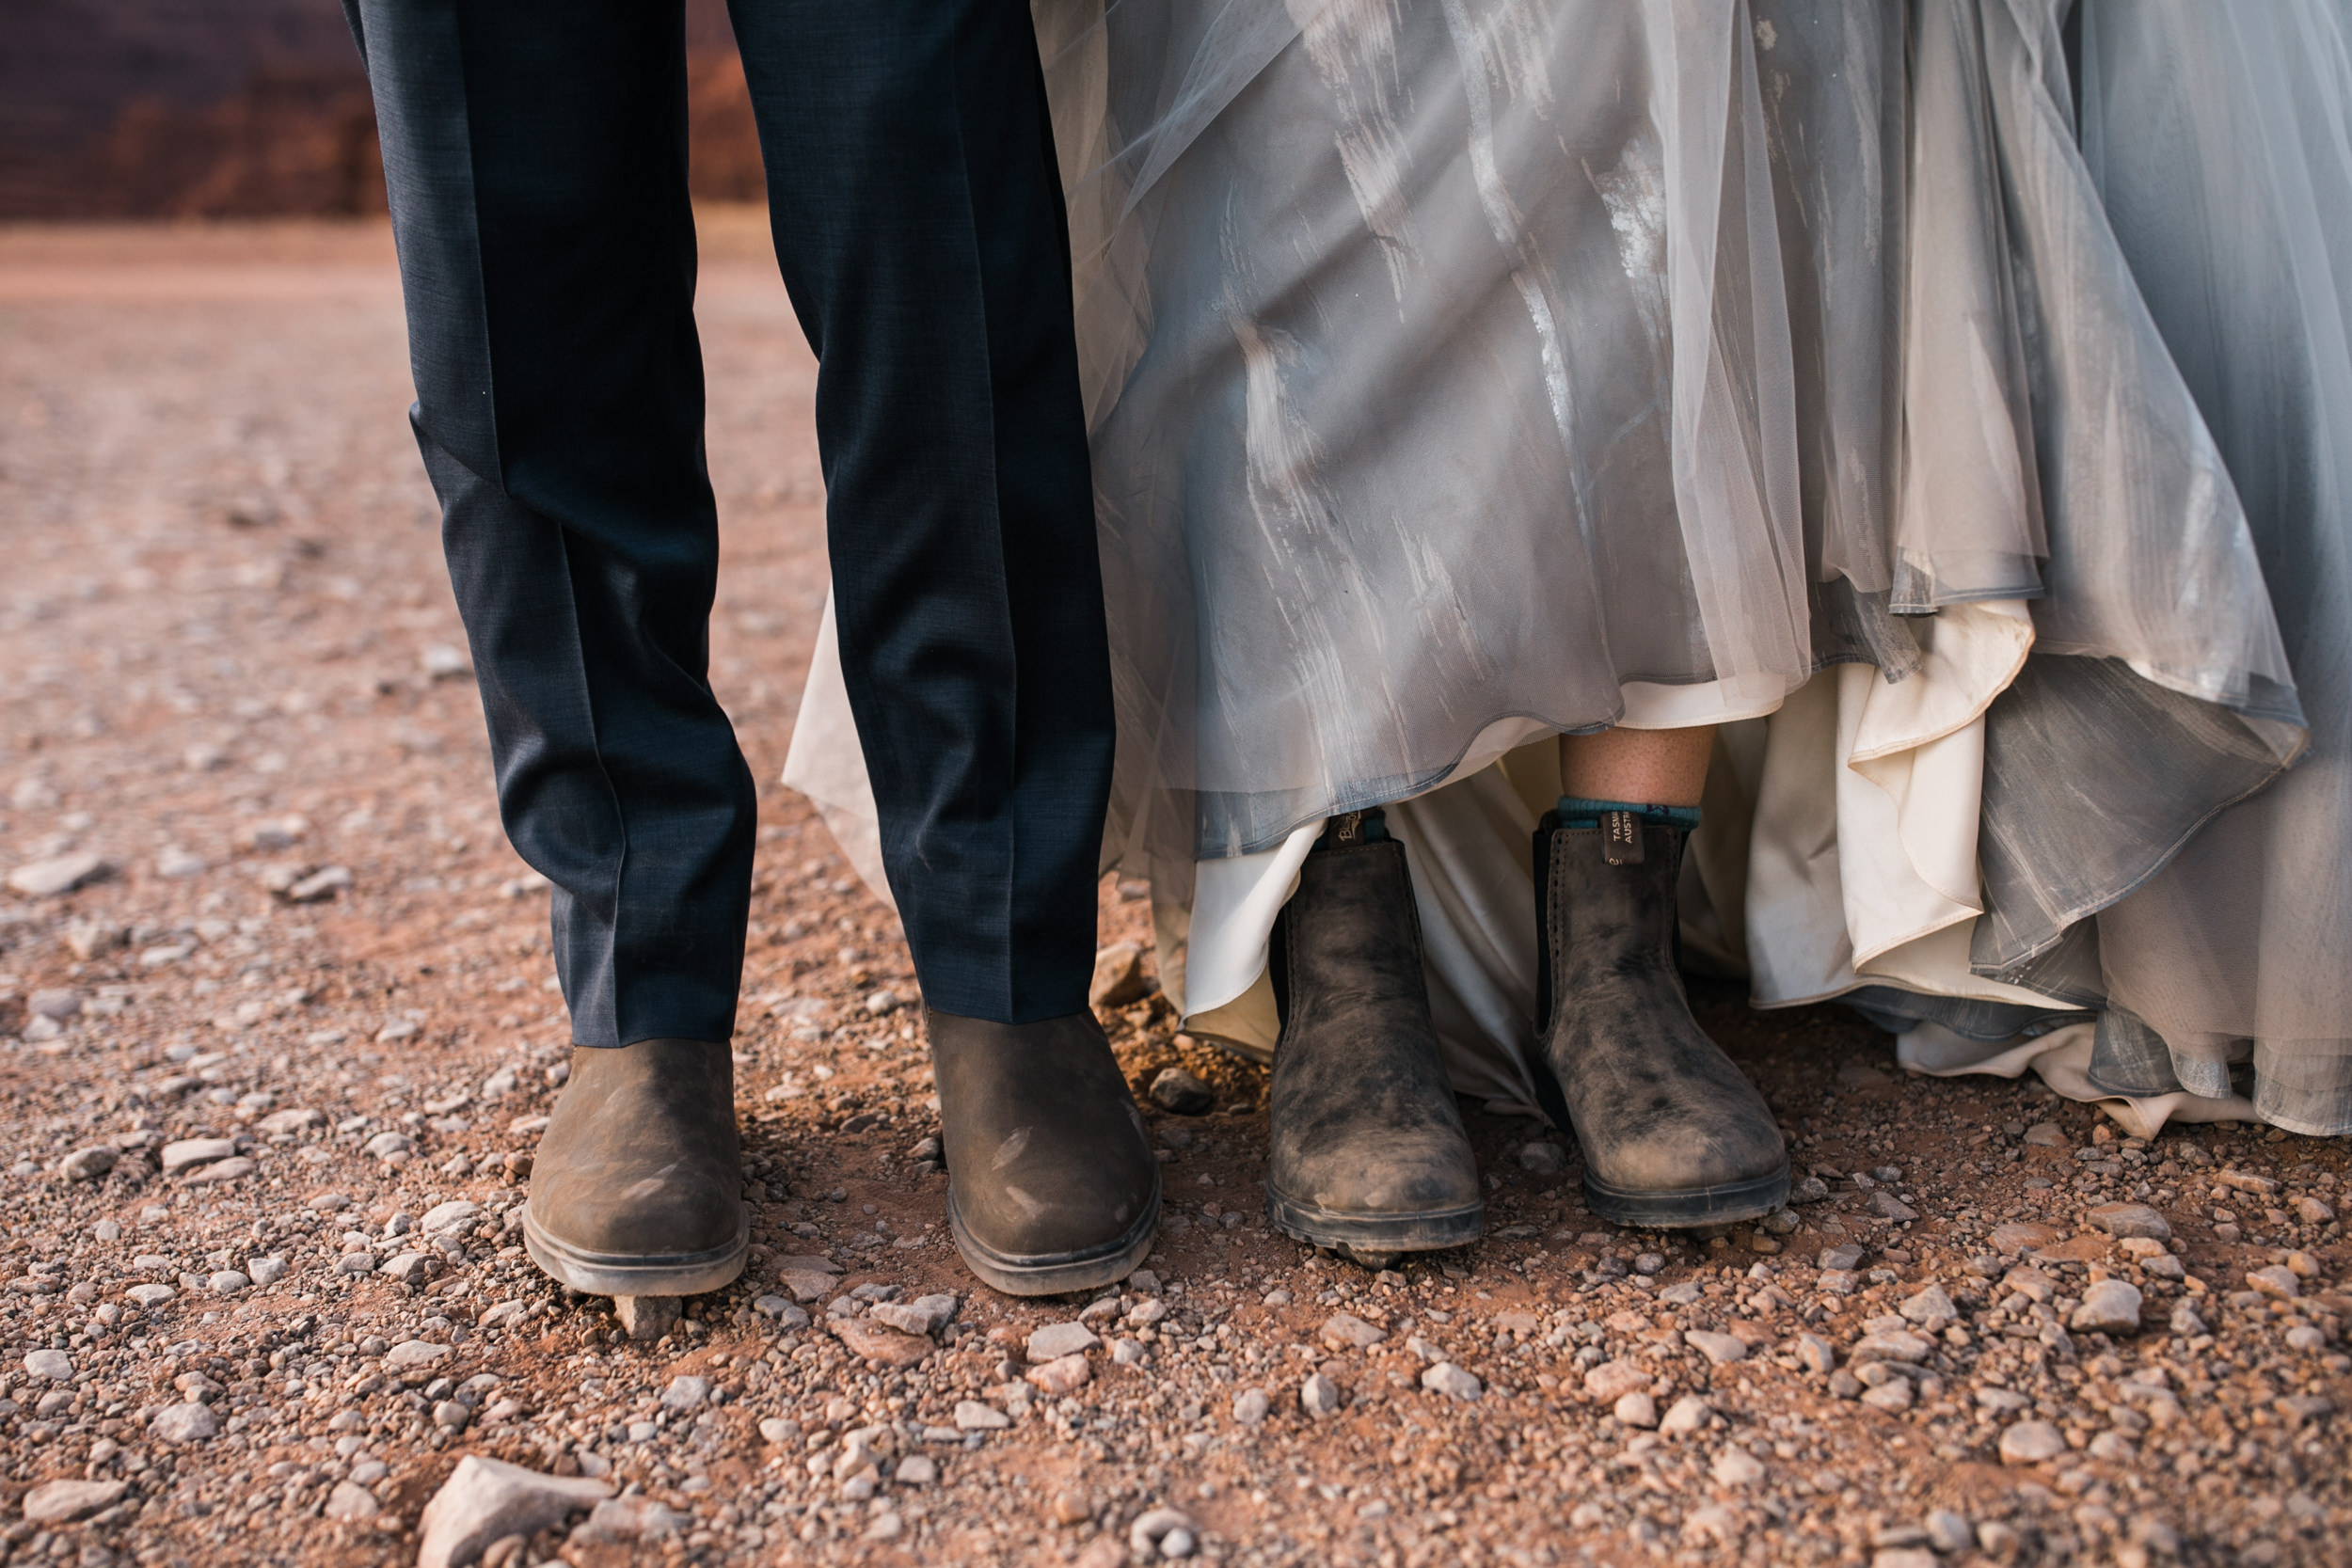 intimate wedding ceremony in canyonlands national park | off-roading jeep adventure wedding portraits | moab utah elopement | chantel lauren bride